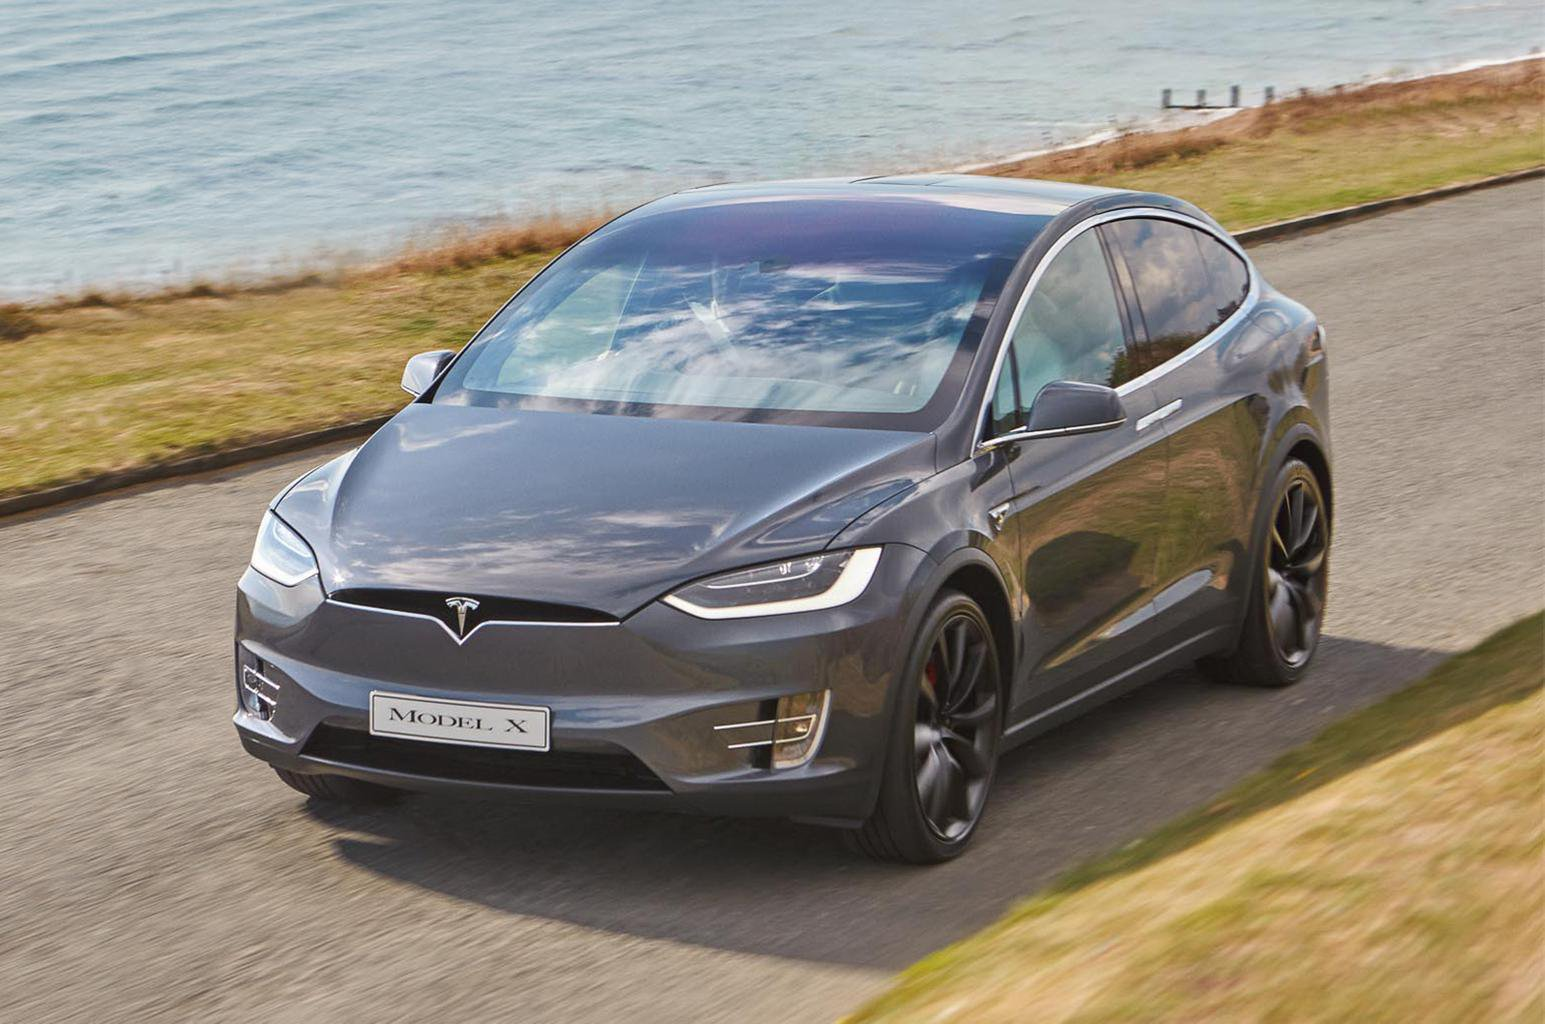 Tesla issues software update to fix Model X potential airbag problem